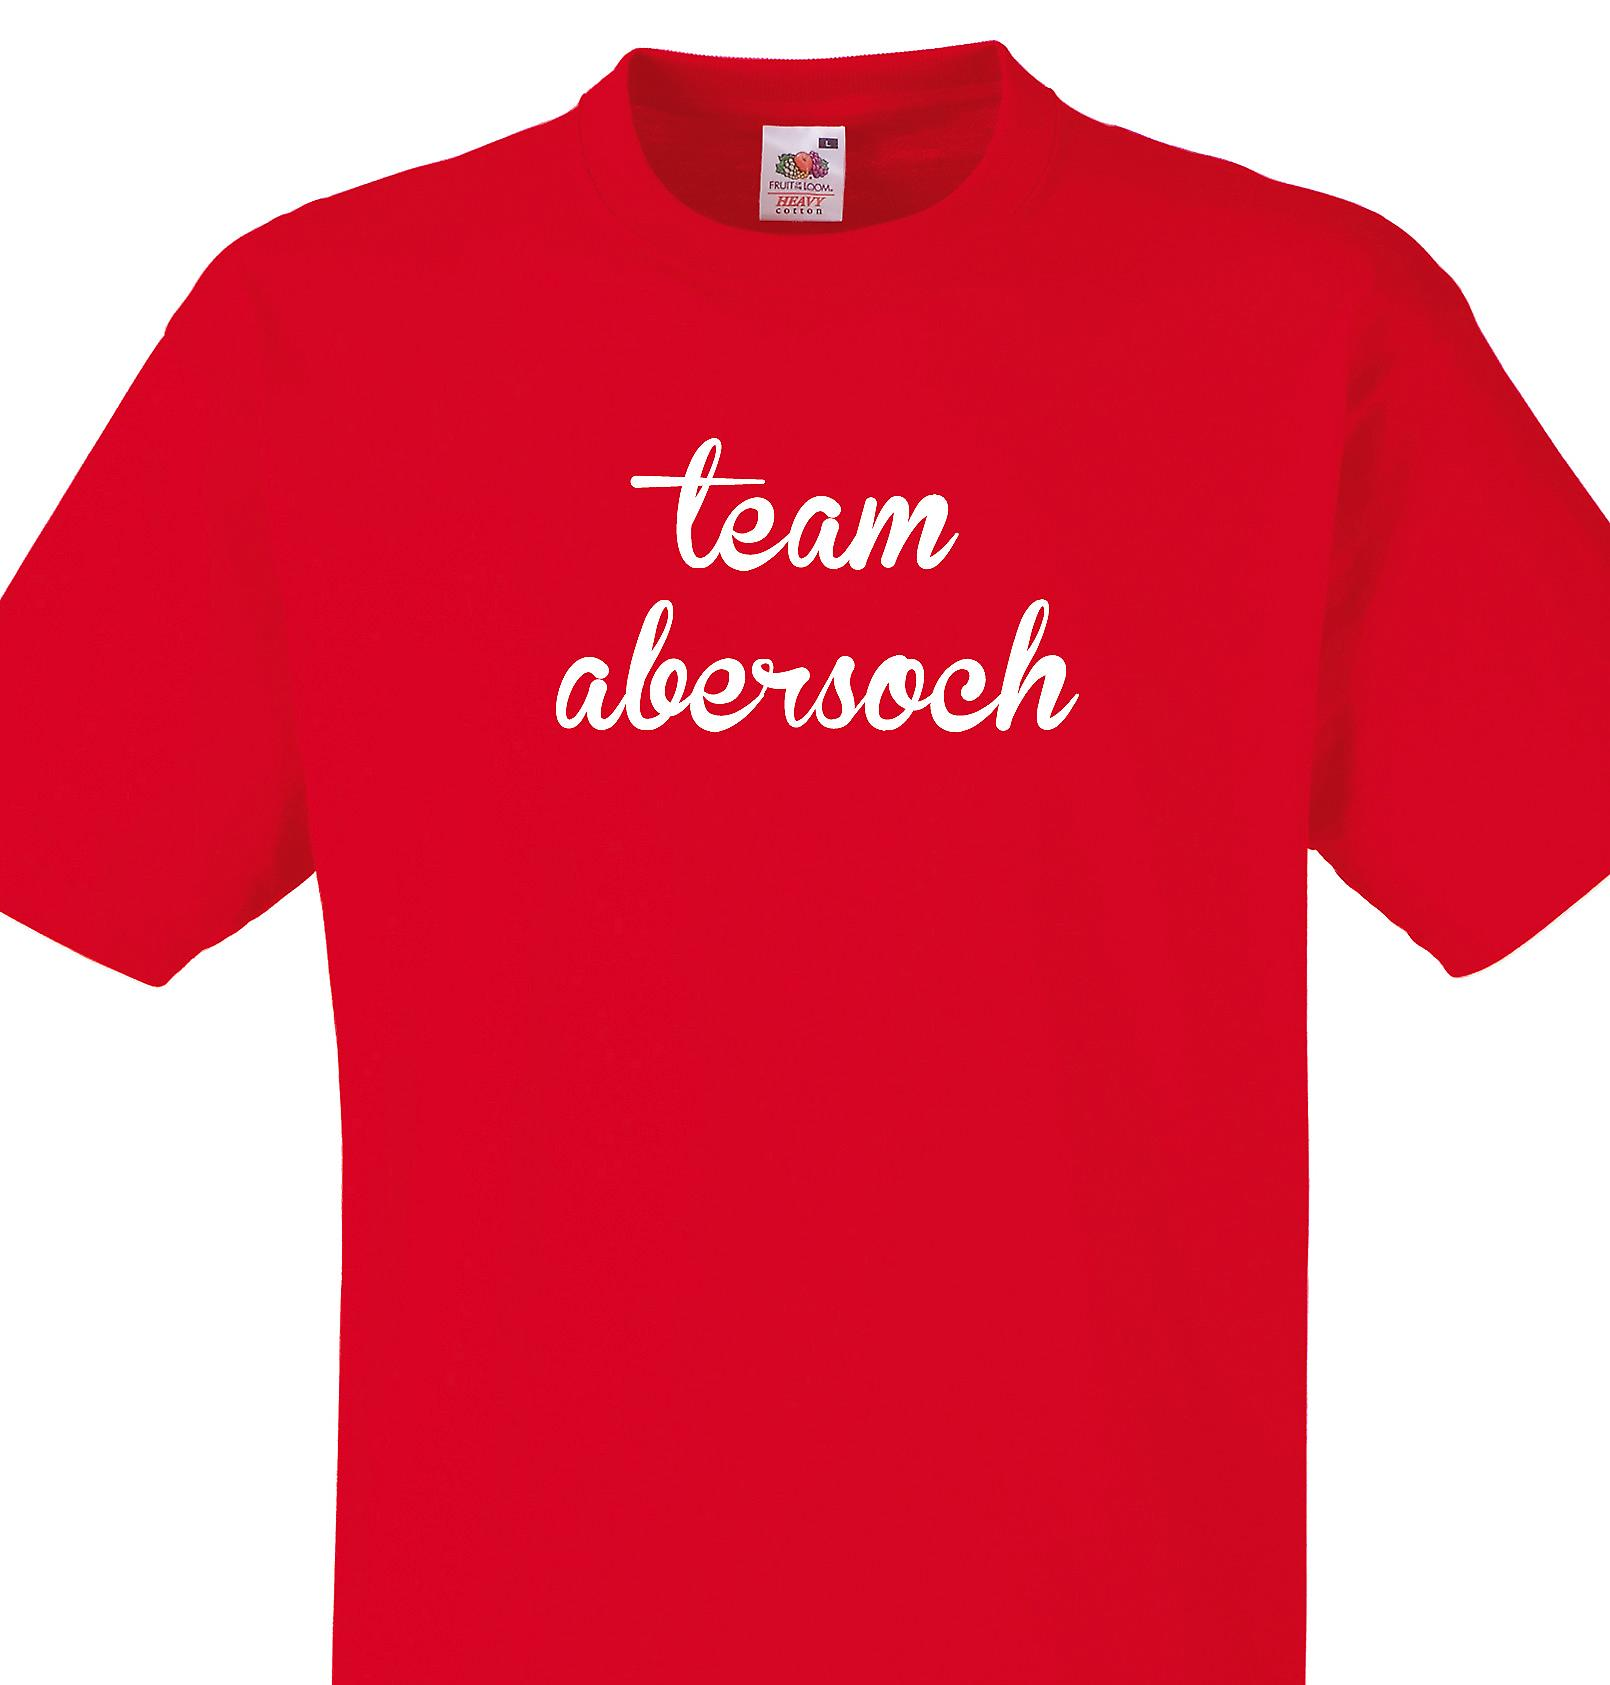 Team Abersoch Red T shirt